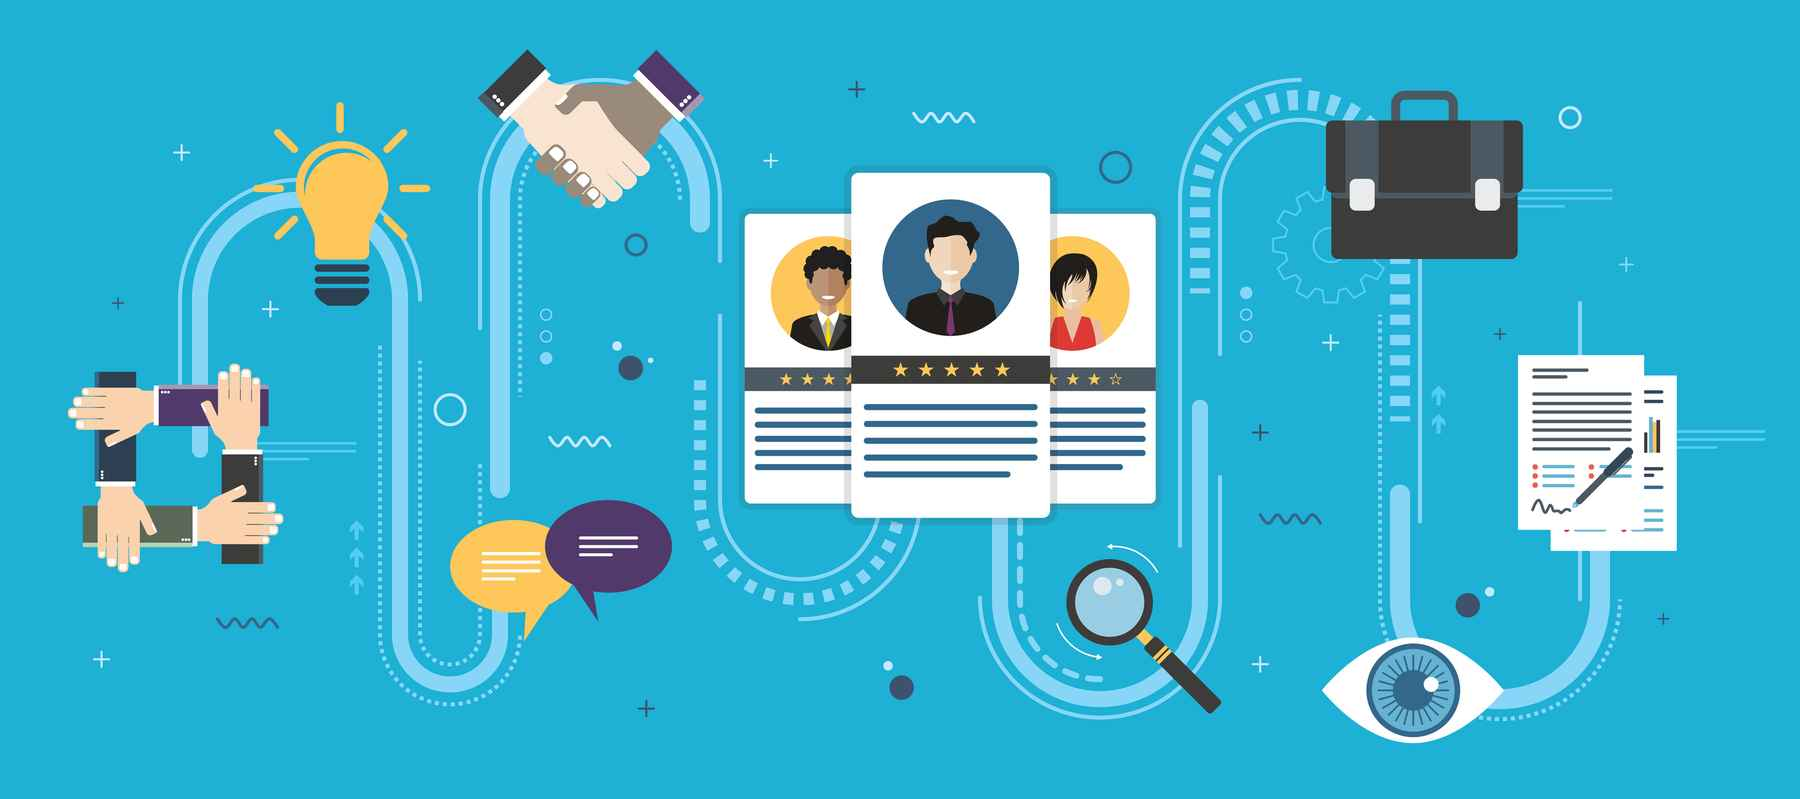 How to Leverage Your Current Employees for Job Candidate Recruitment